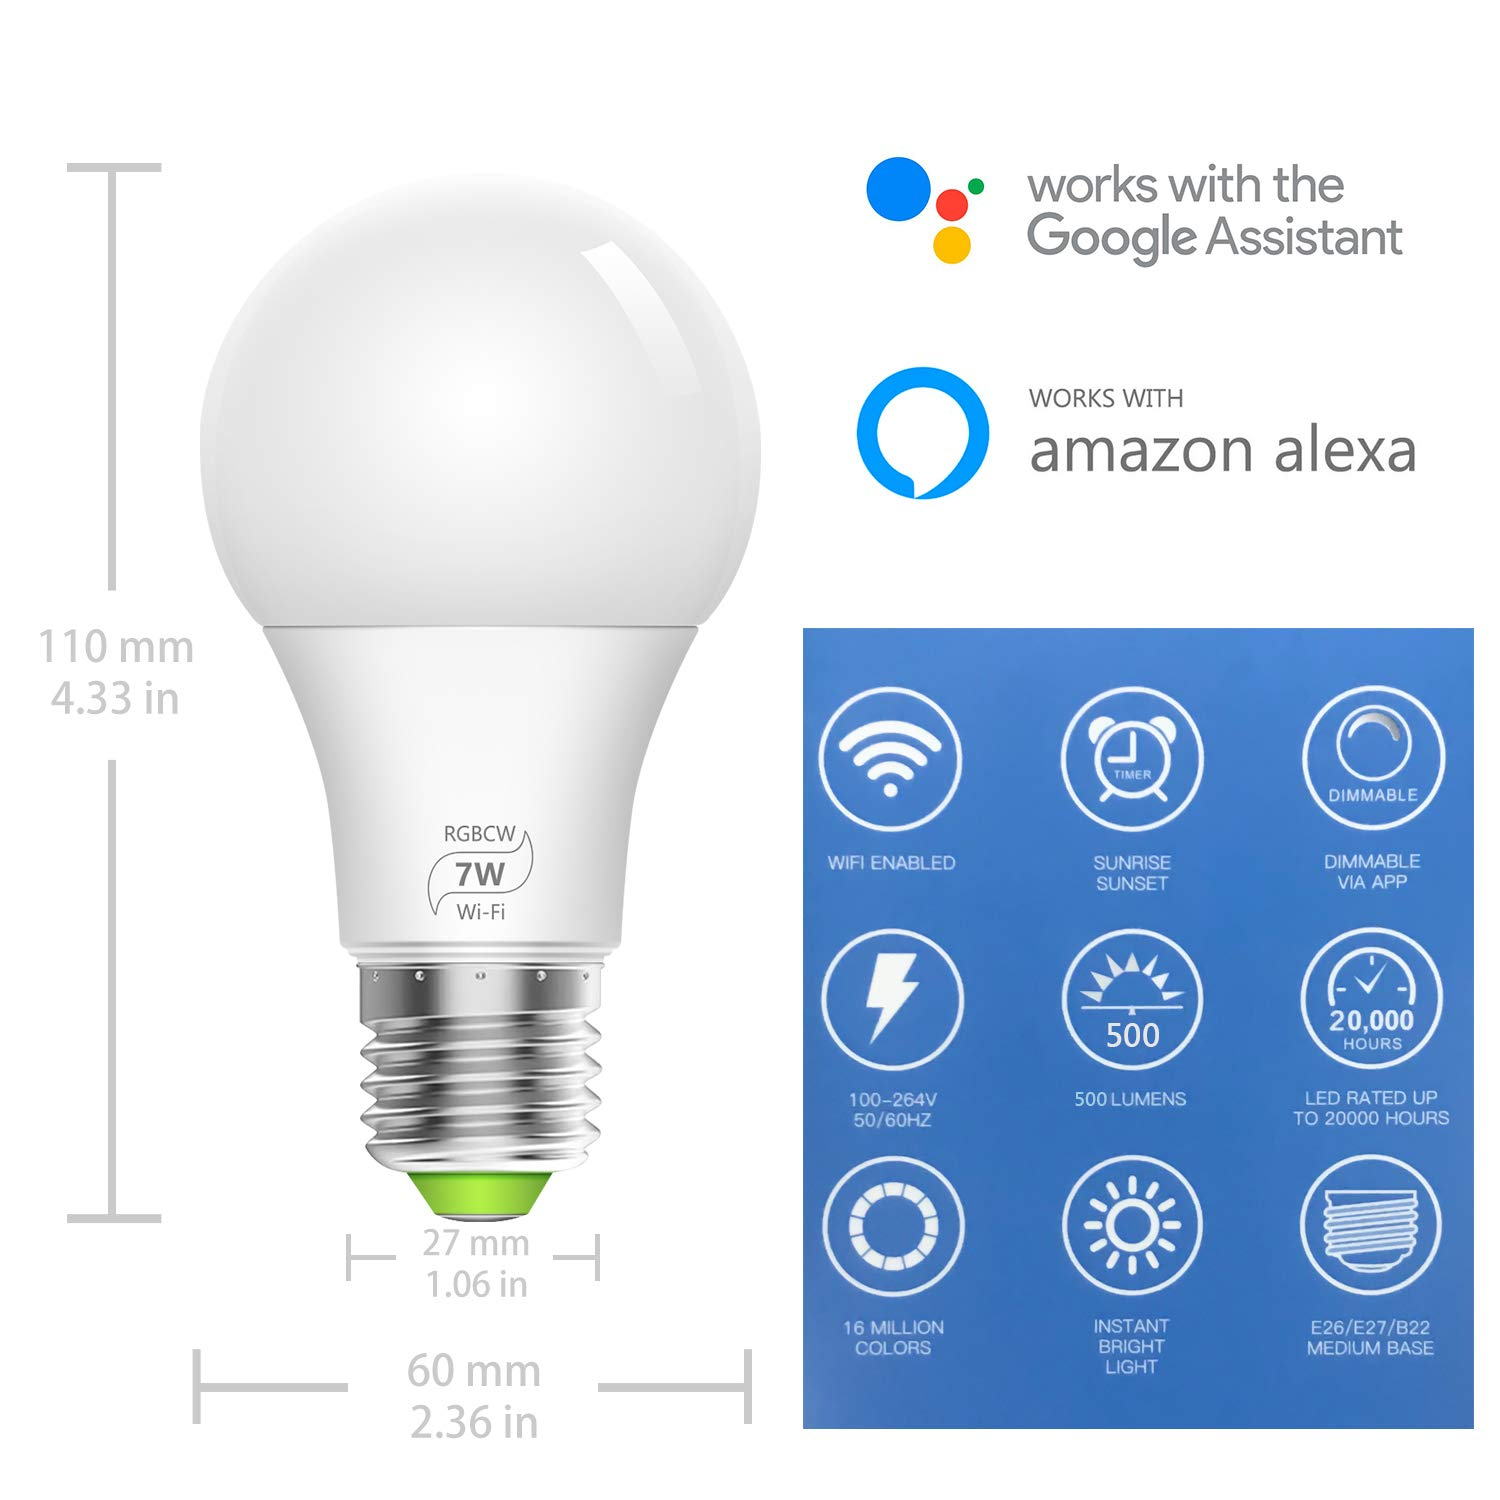 WiFi Dimmable Smart Light Bulb- Bistee Smart WiFi Bulb E26 7W RGBW Dimmable Smart Color Light Bulb with Remote Control 500 lm Compatible with Alexa Google Home,No Hub Required, 2 Pack LED Bulbs